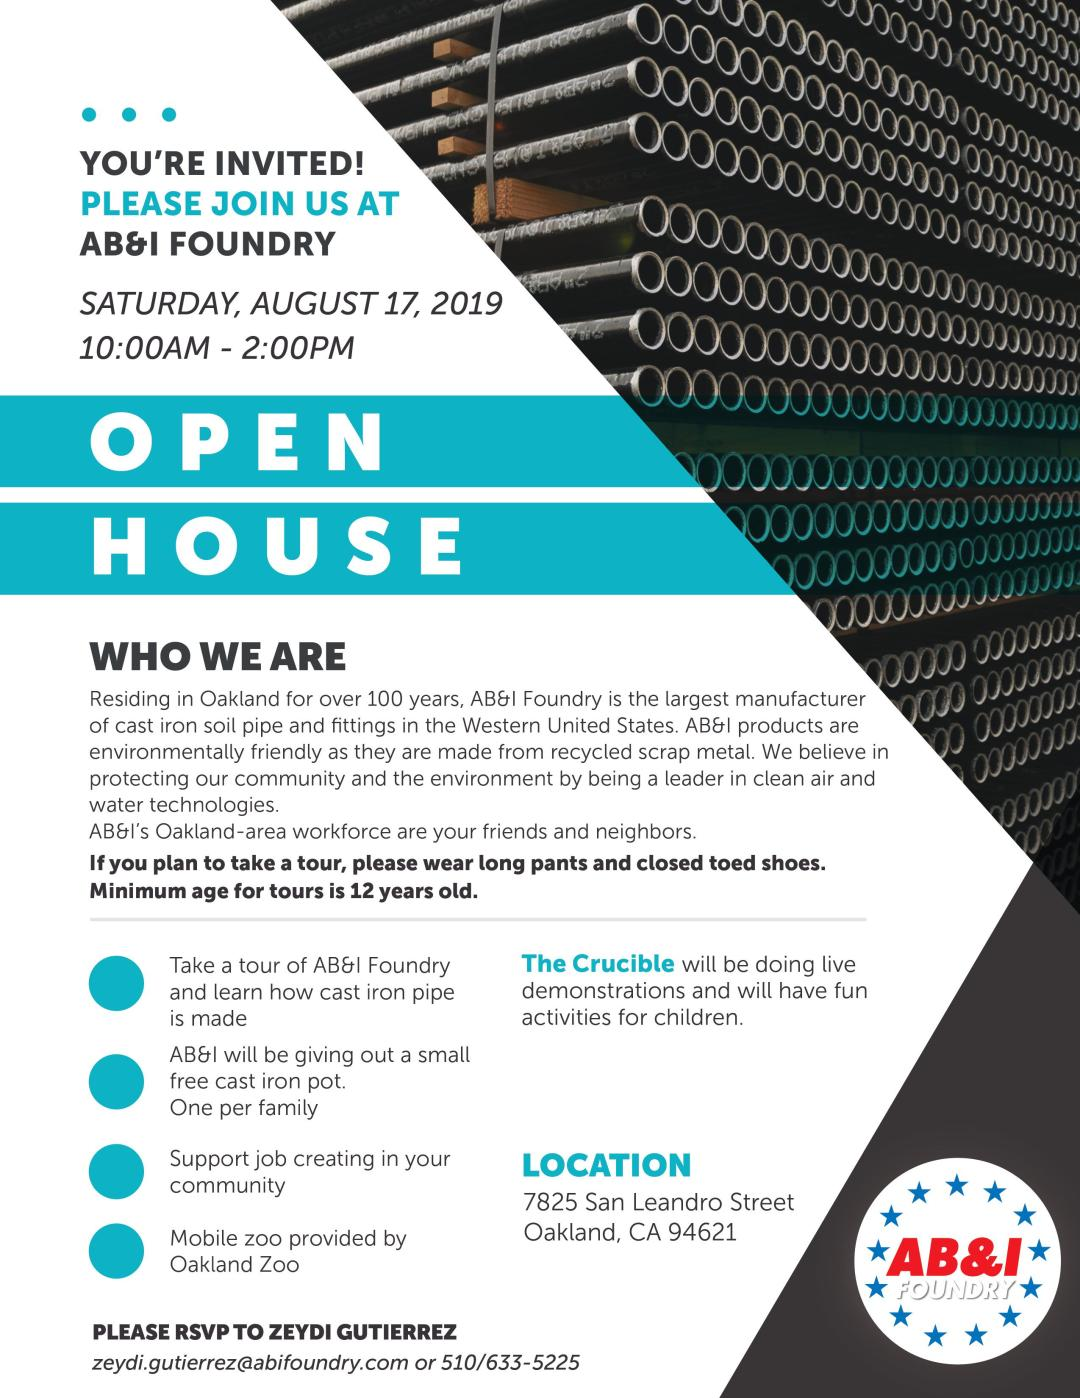 AB&I Foundry Open House Flyer - August 17 2019